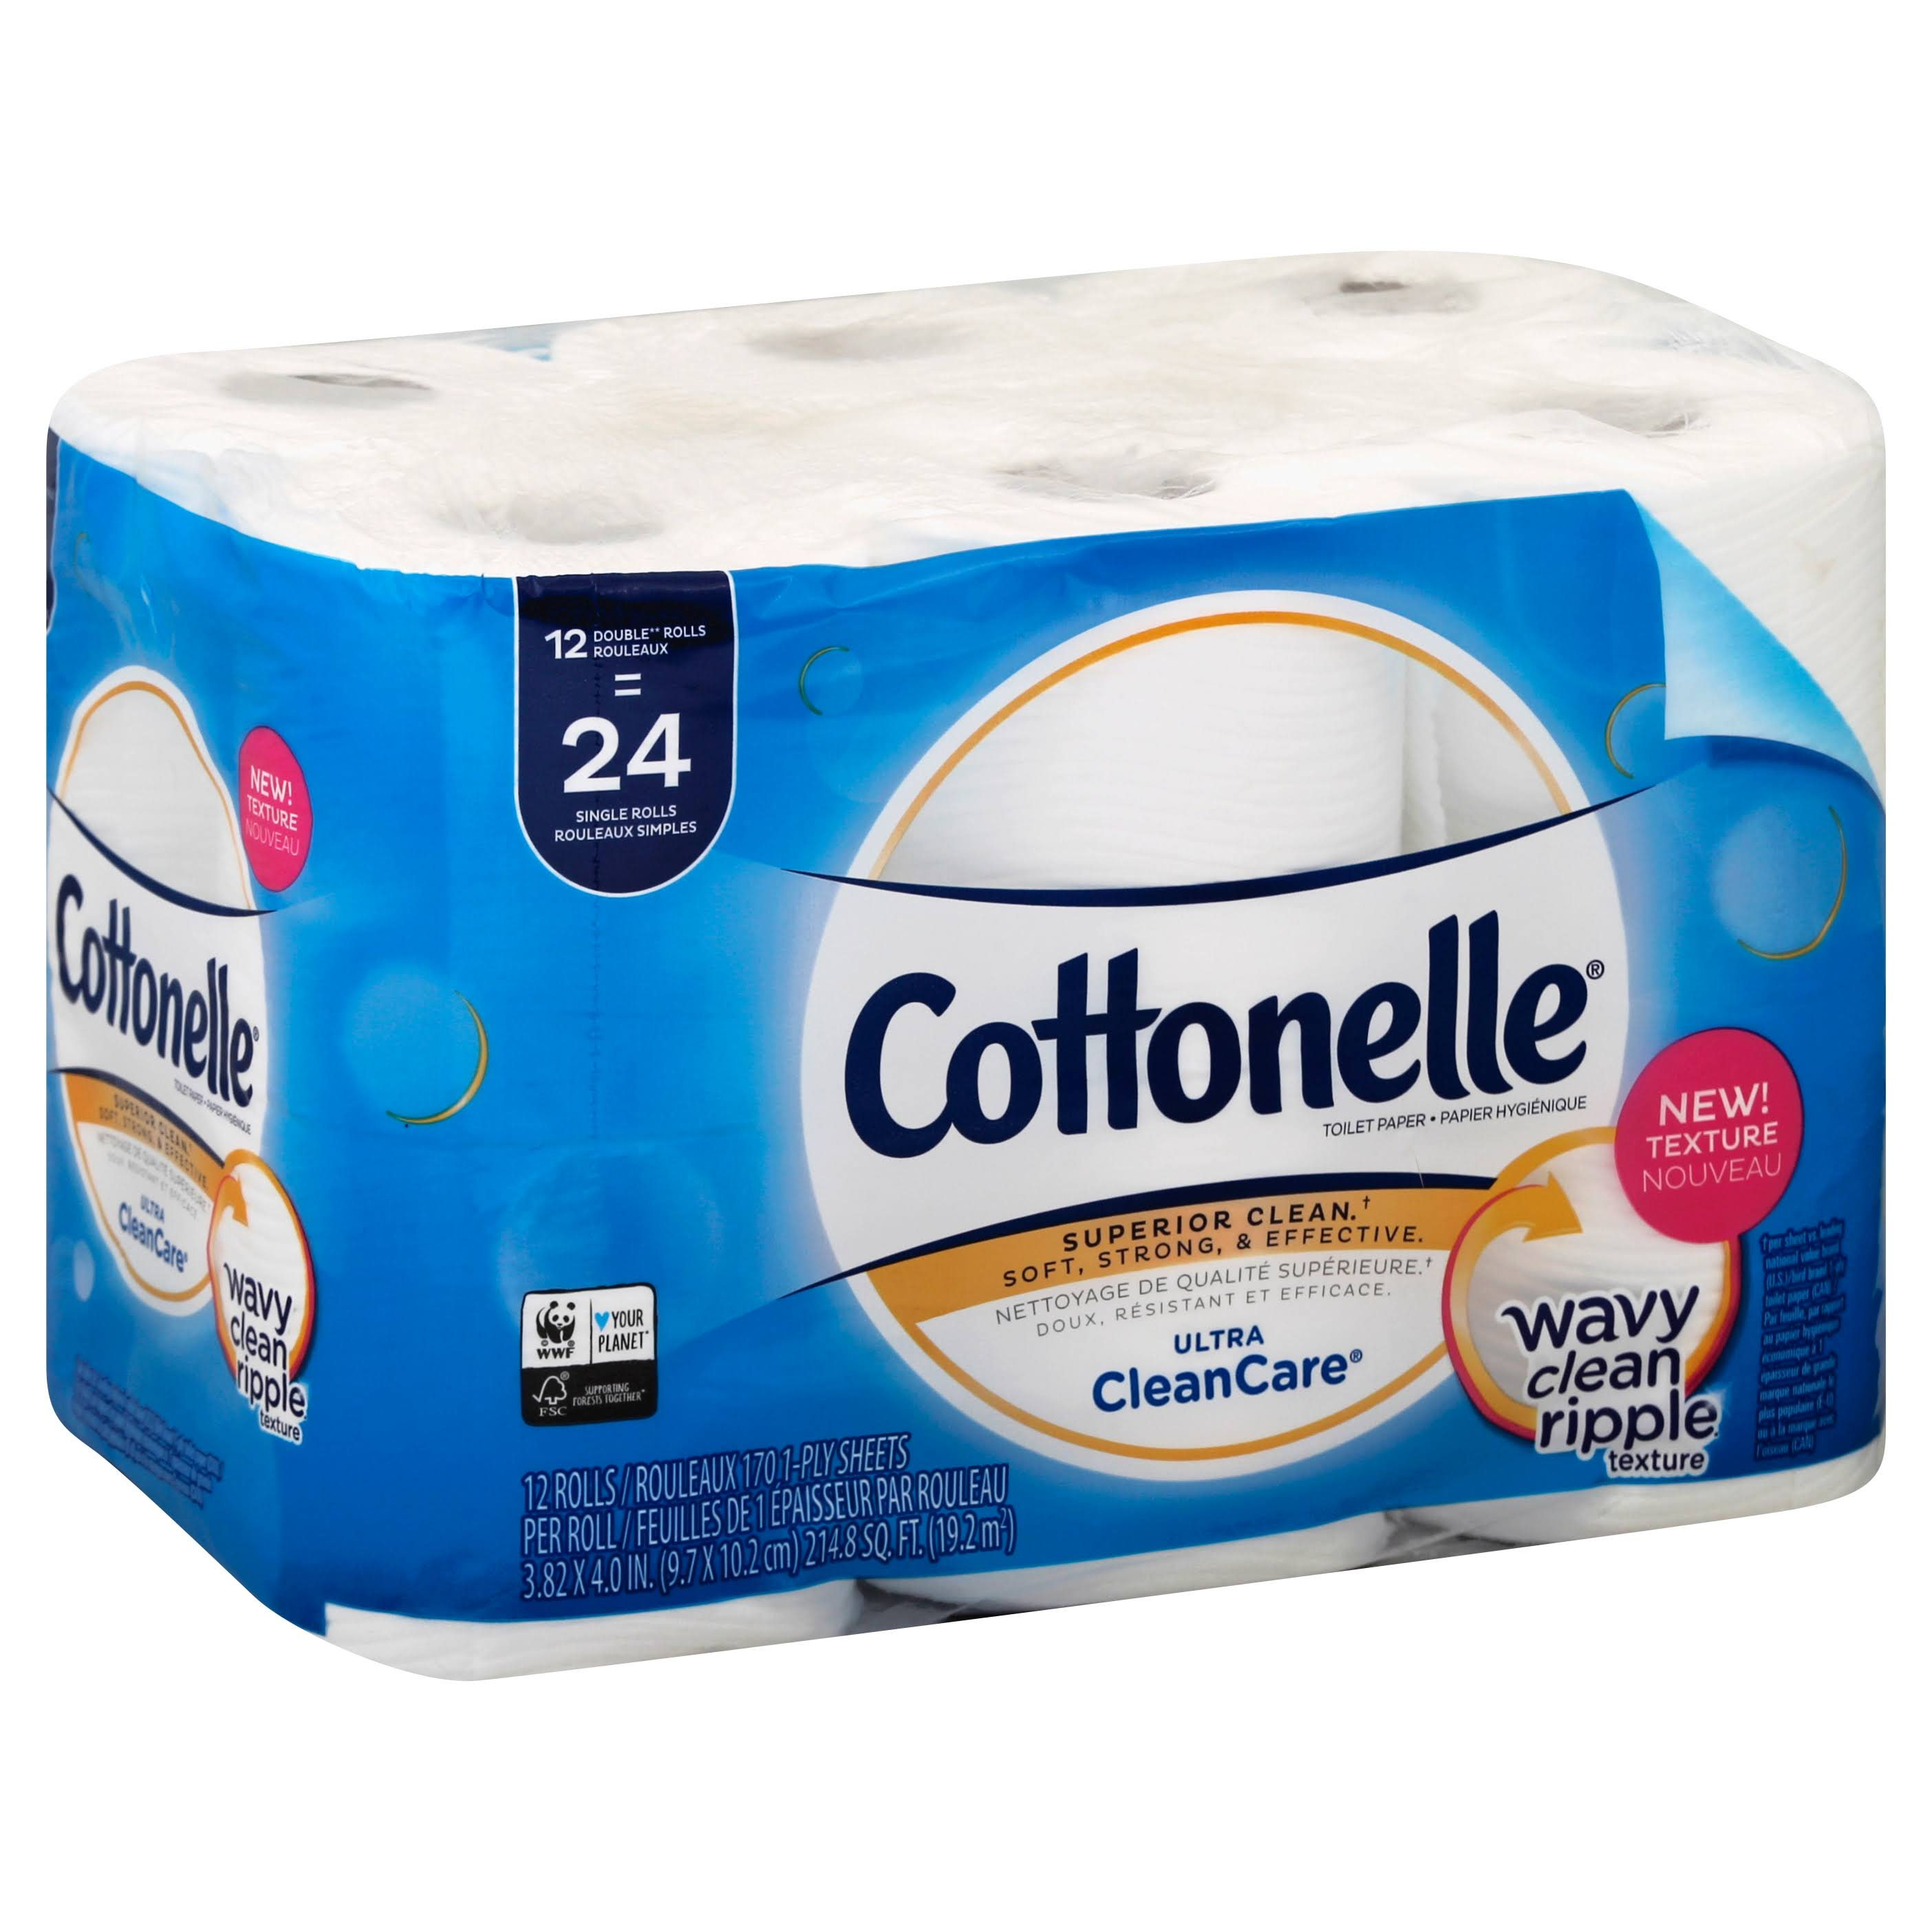 Cottonelle Clean Care Double Roll Toilet Paper - 12ct